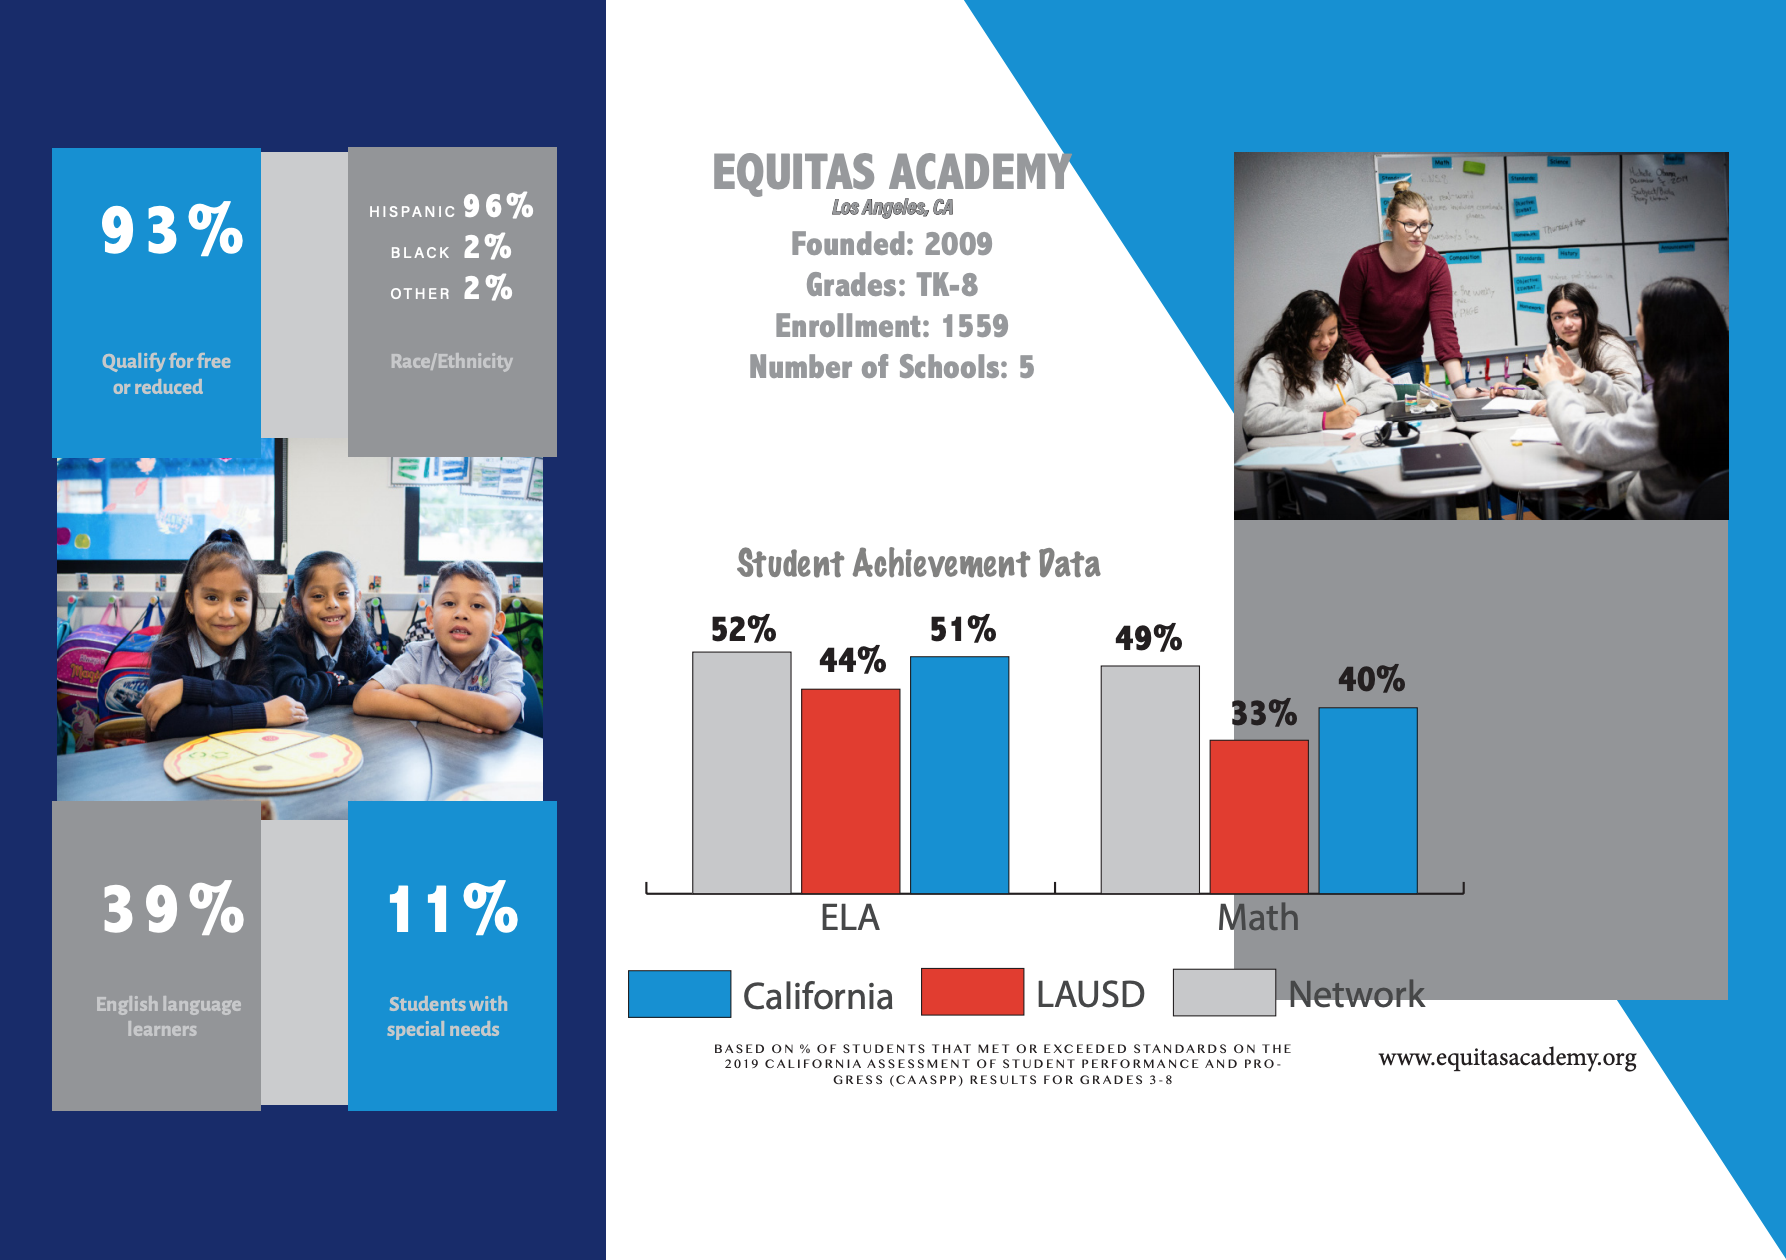 Equitas Academy results